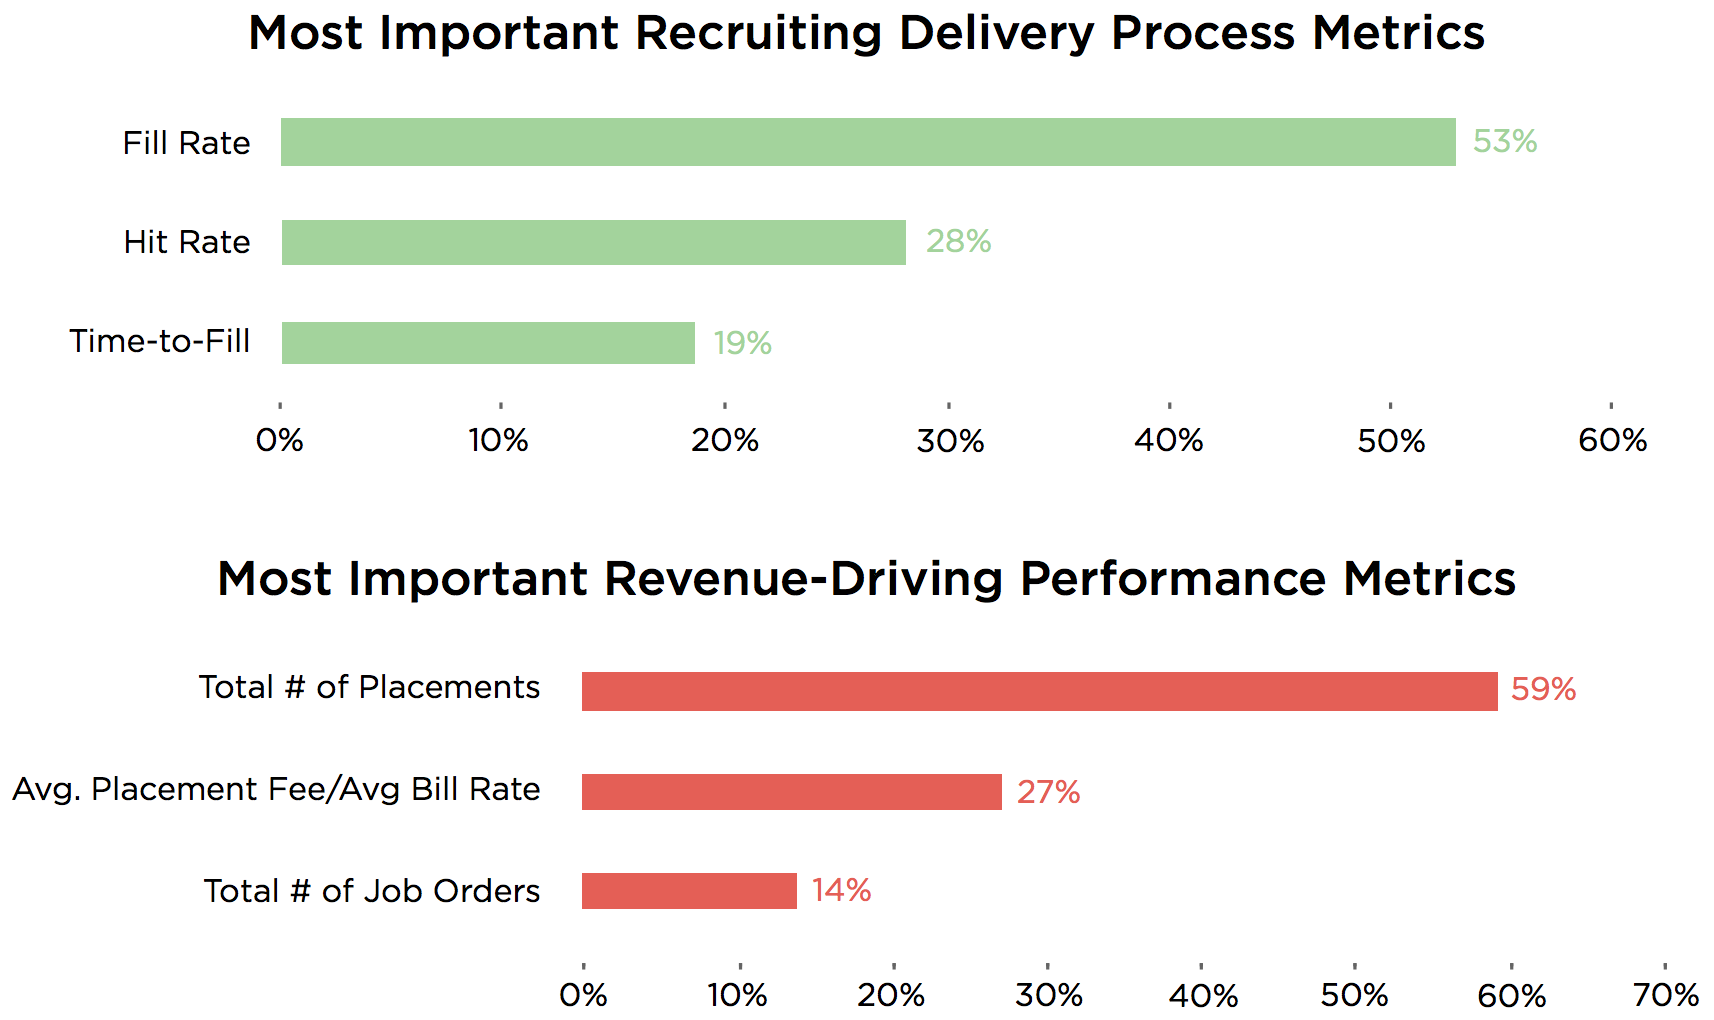 what recruiting metrics do you need to track the most important recruiting metrics via bullhorn